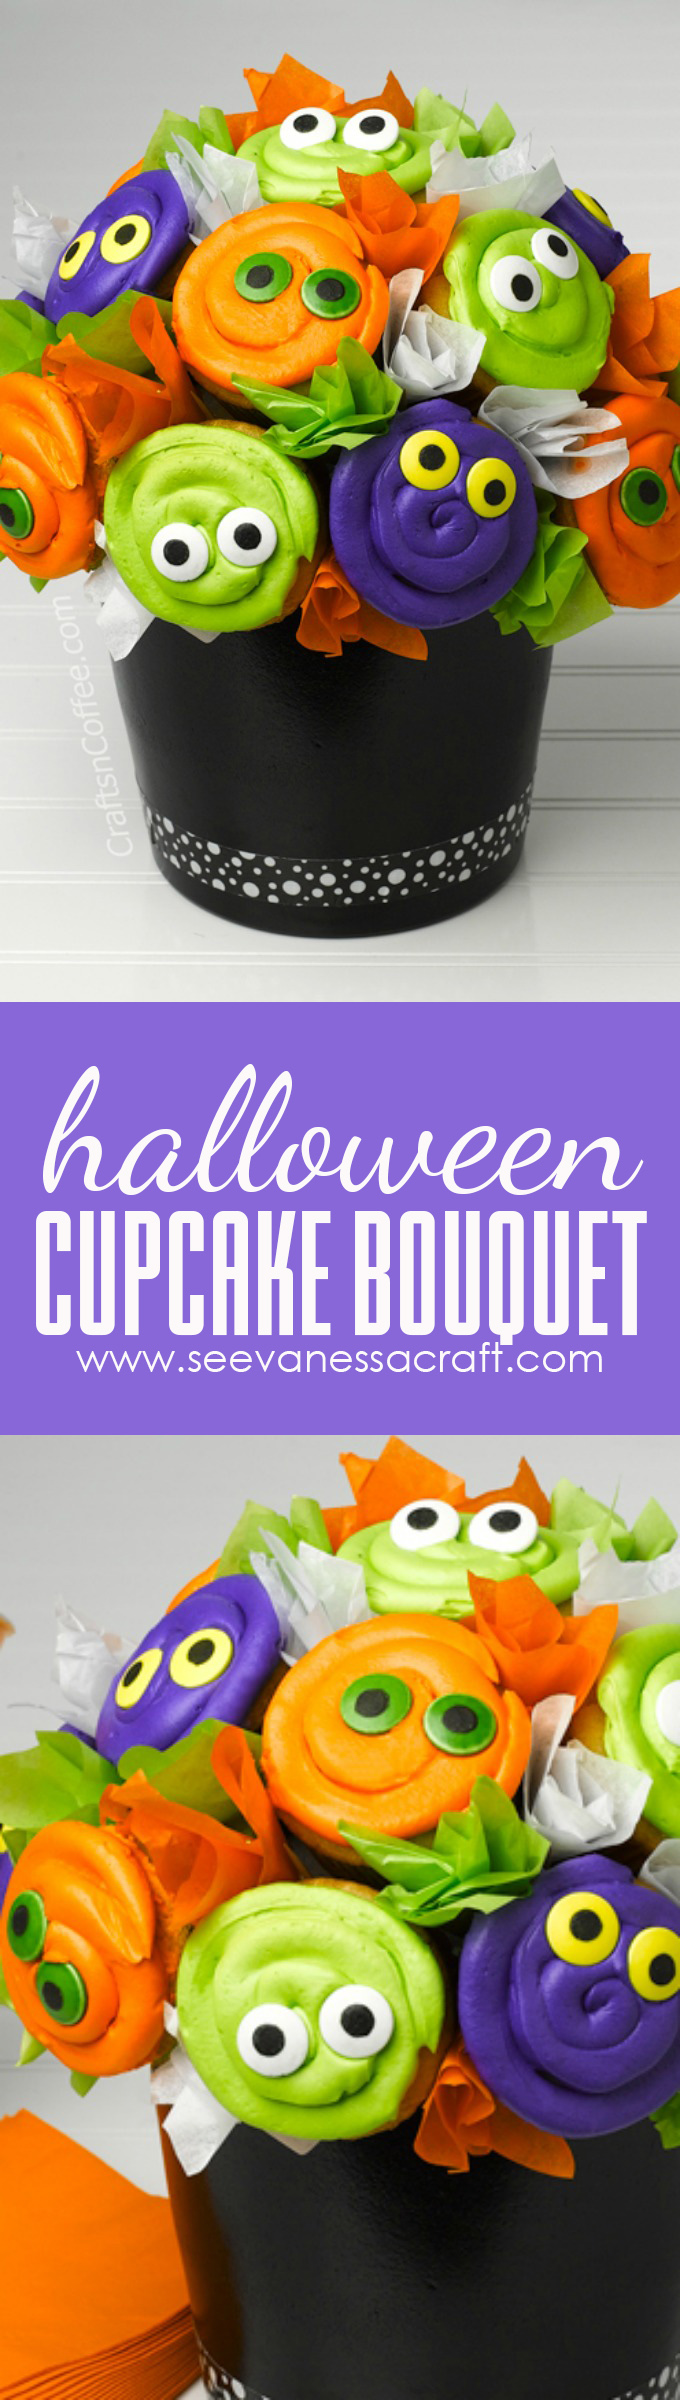 Halloween Cupcake Bouquet Tutorial copy